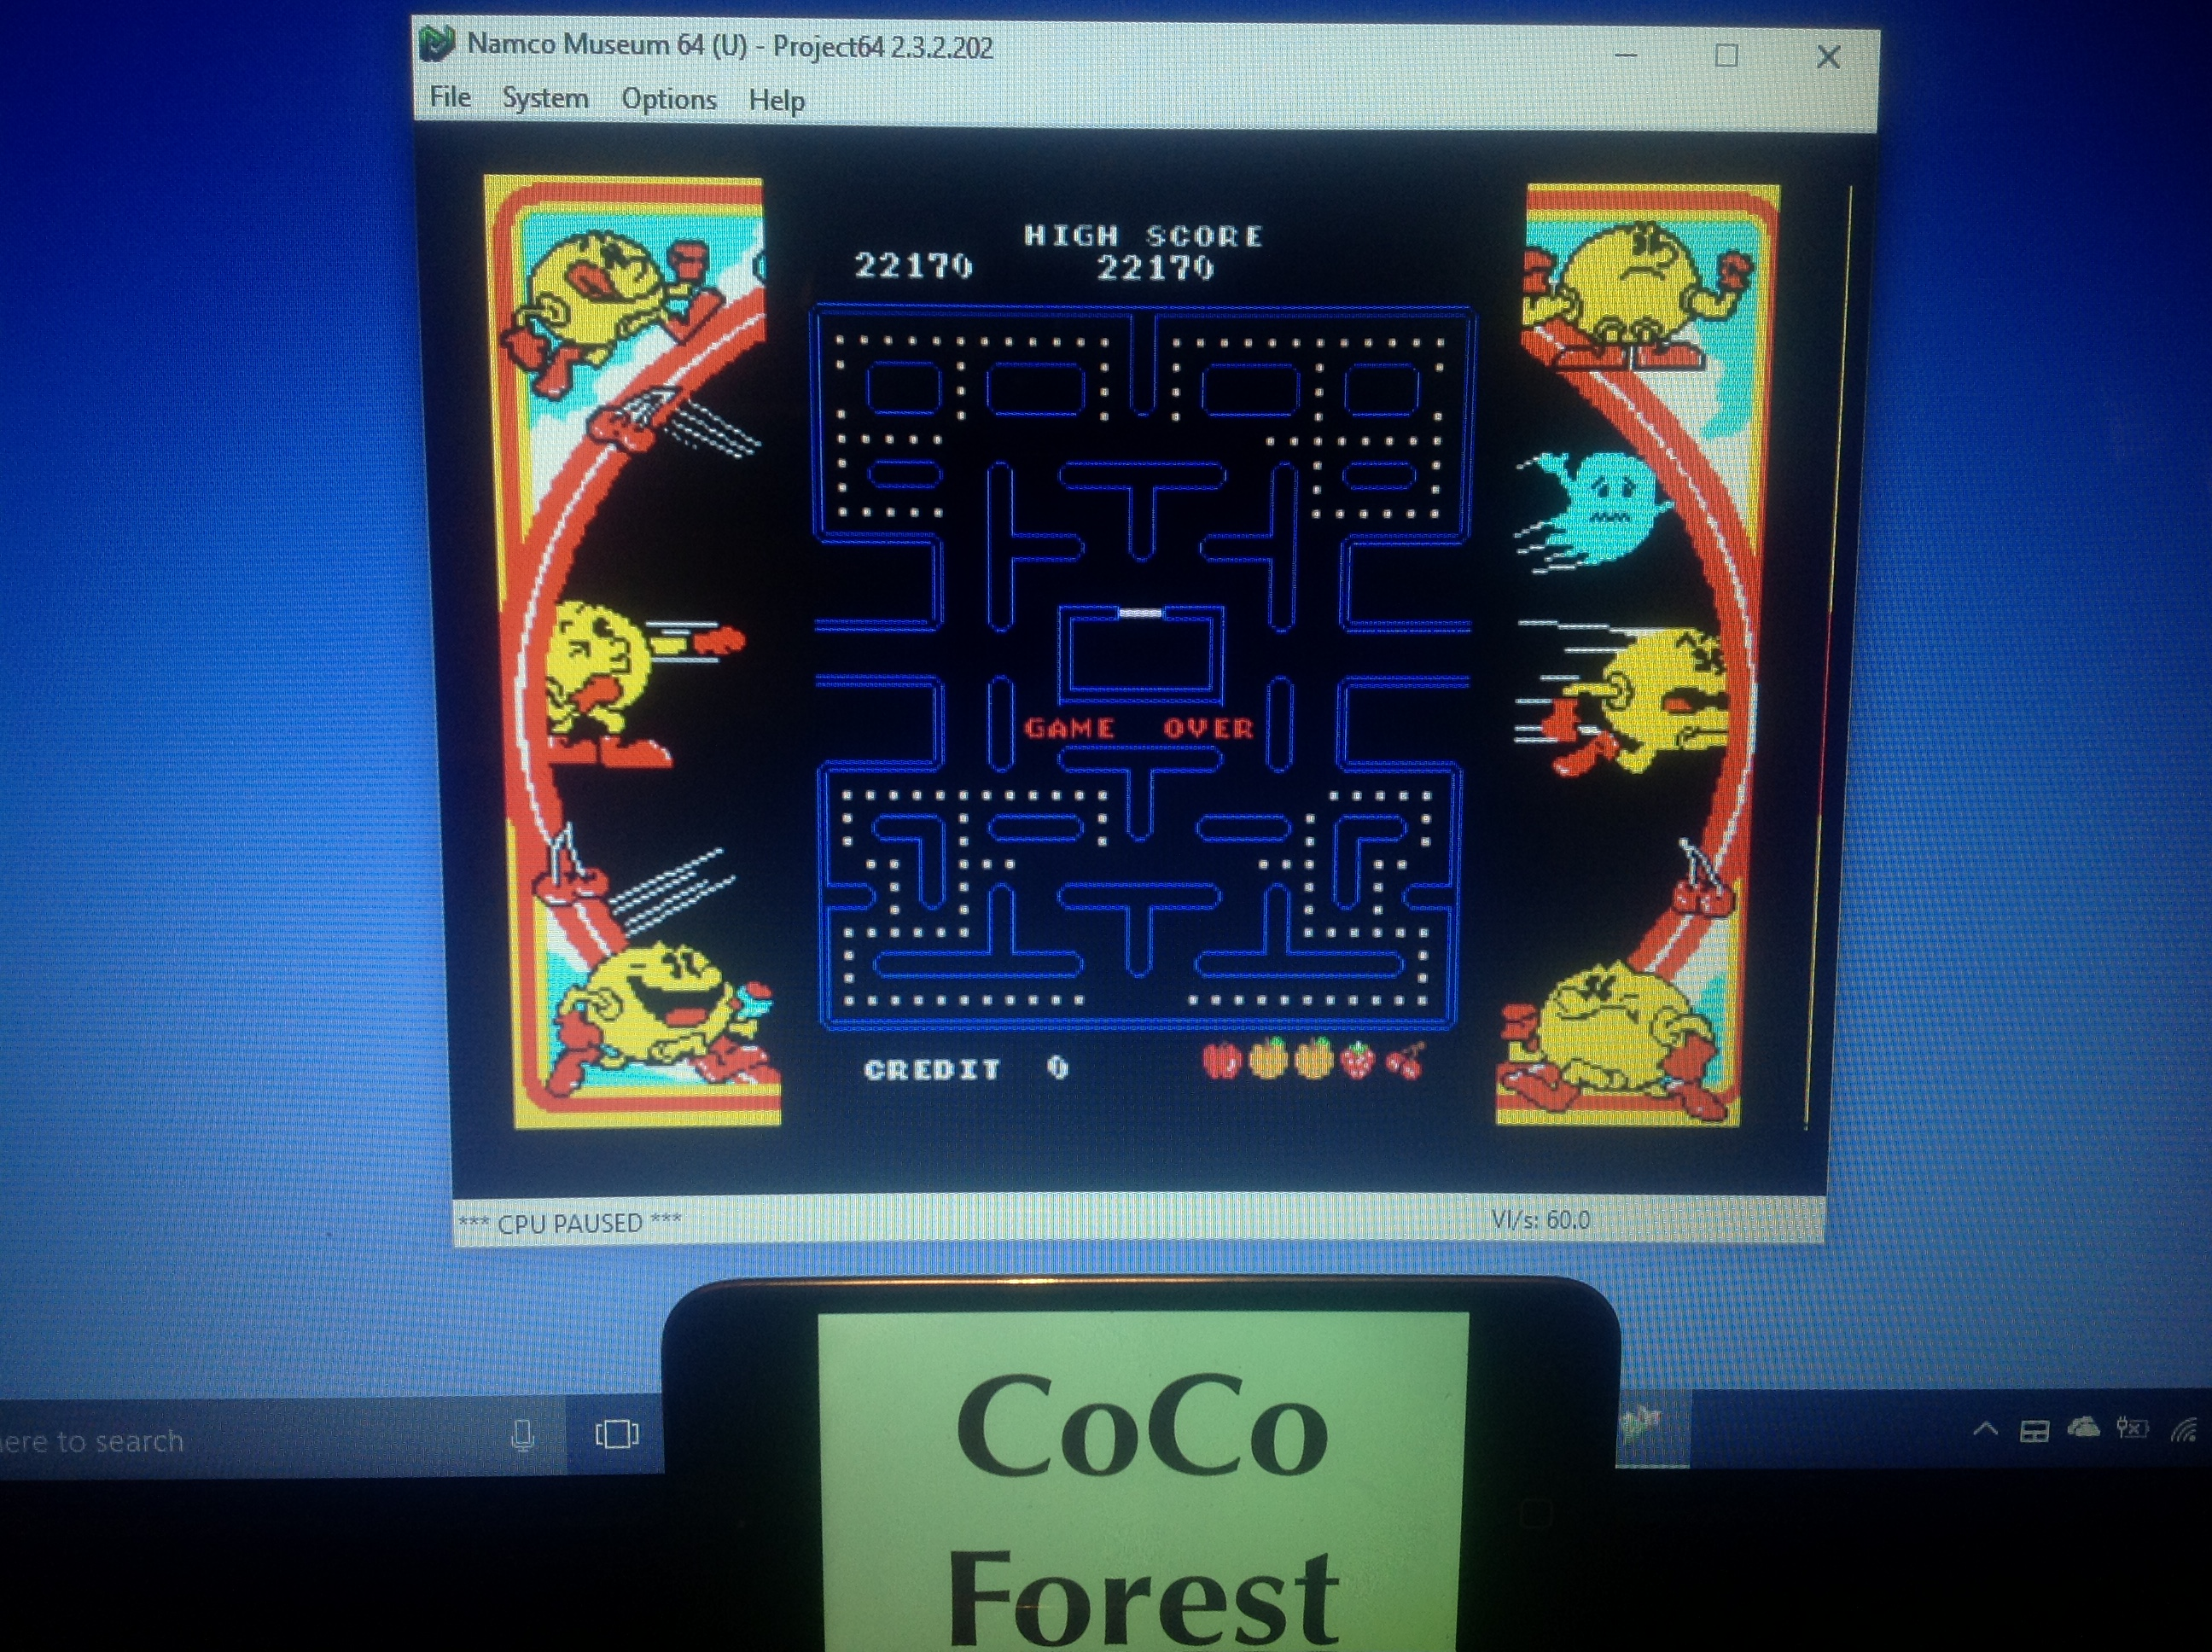 CoCoForest: Namco Museum 64: Pac-Man (N64 Emulated) 22,170 points on 2018-01-29 11:40:27